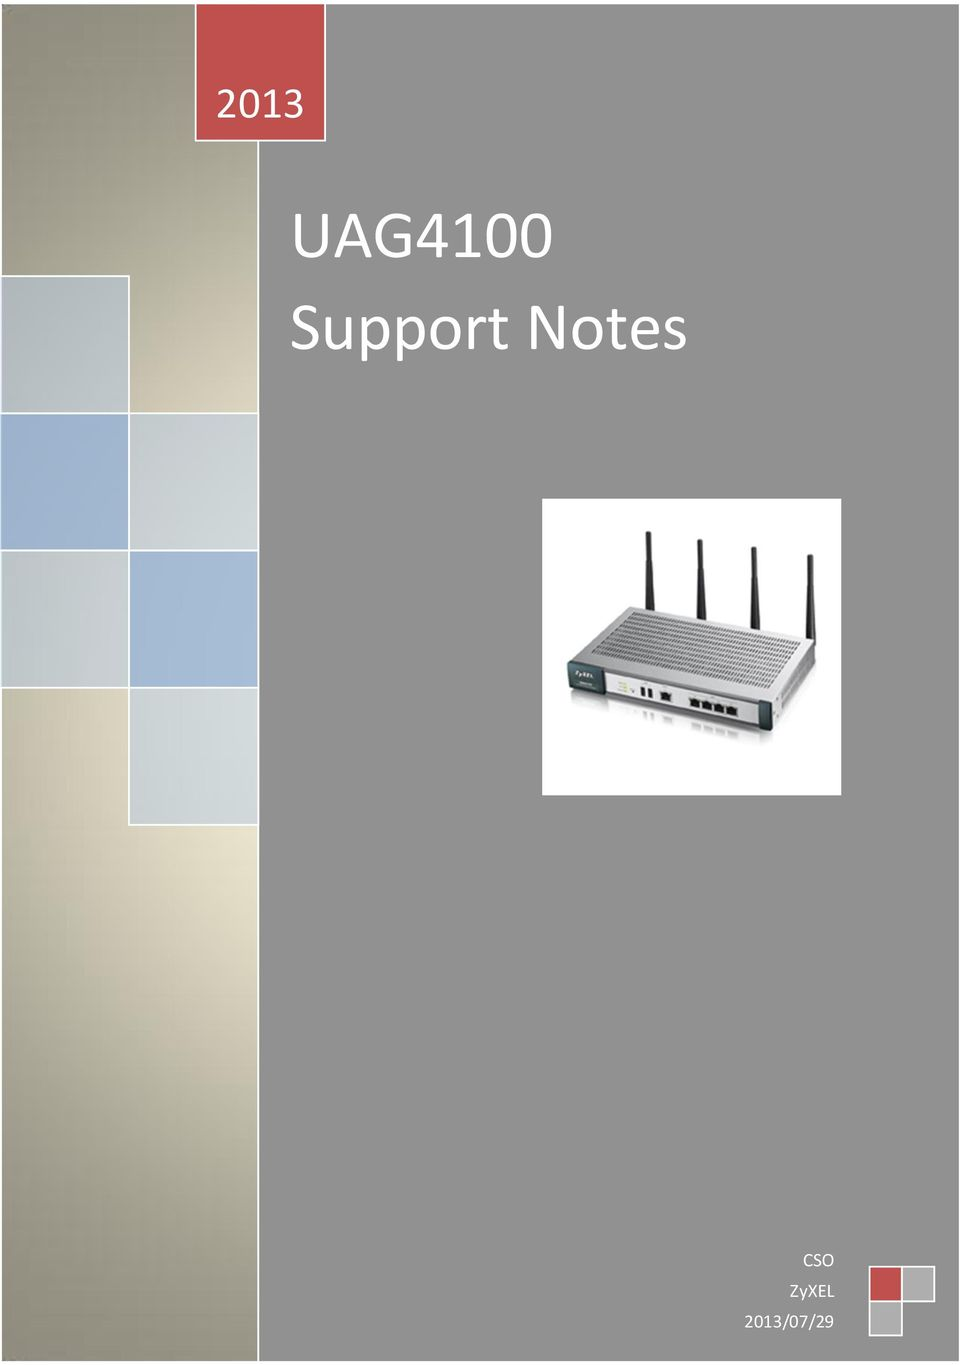 UAG4100 Support Notes - PDF